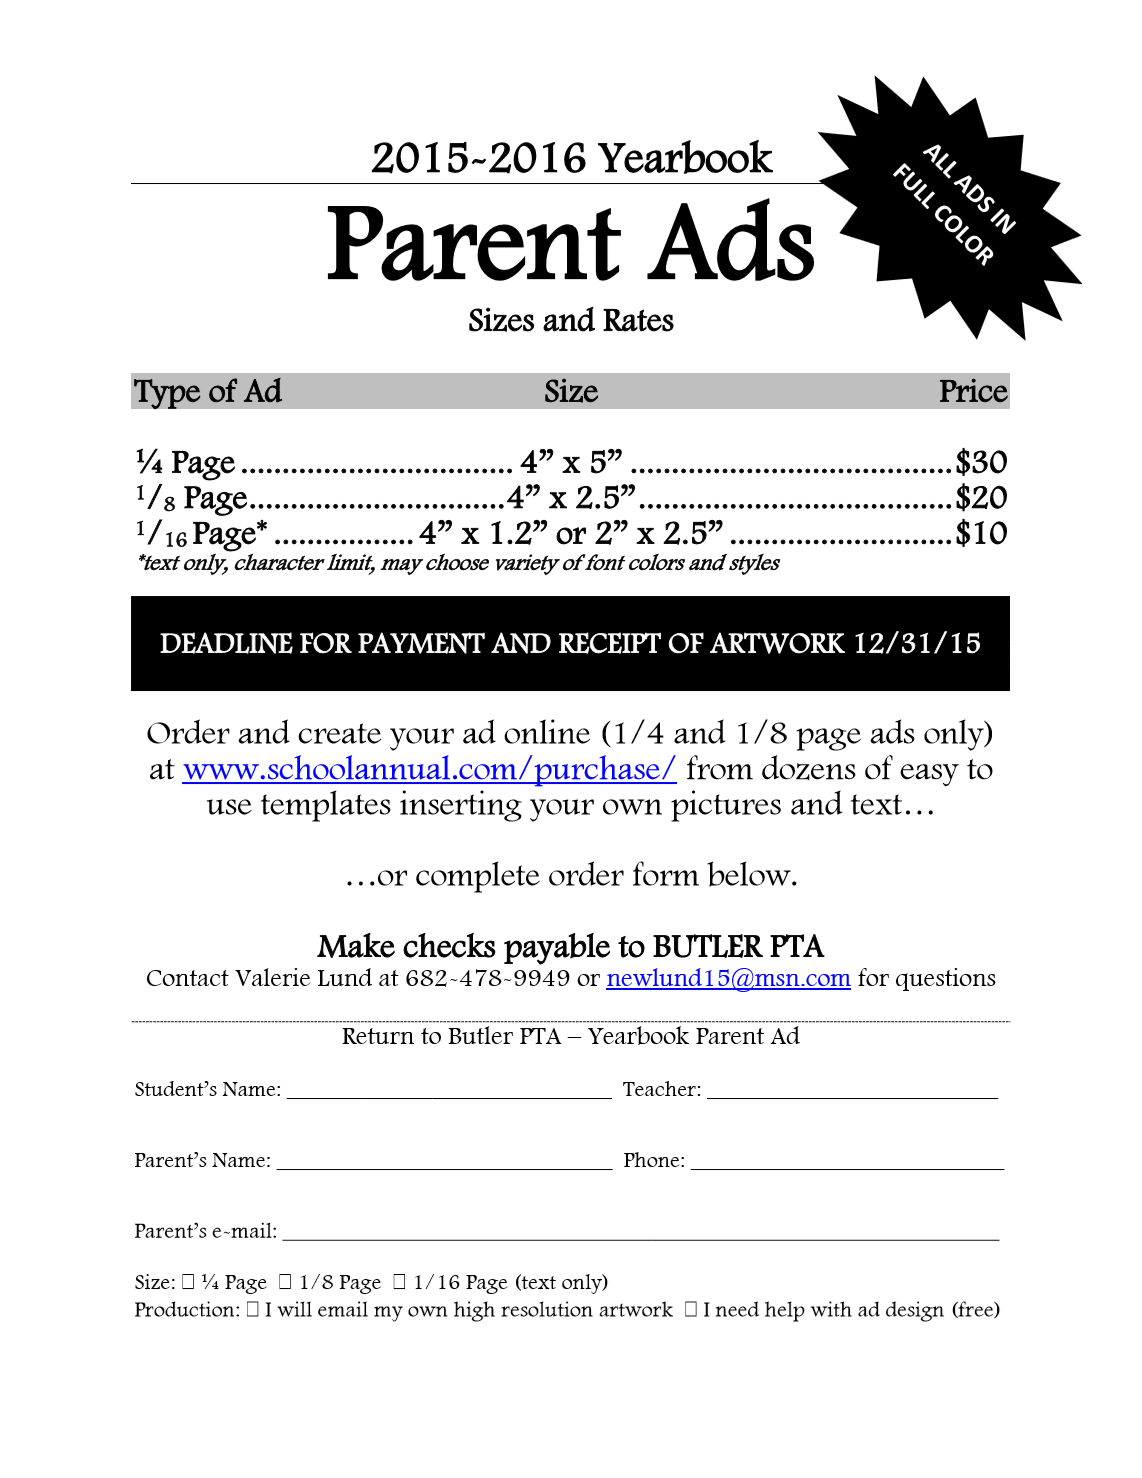 Yearbook Sales & Ads – Butler Elementary PTA